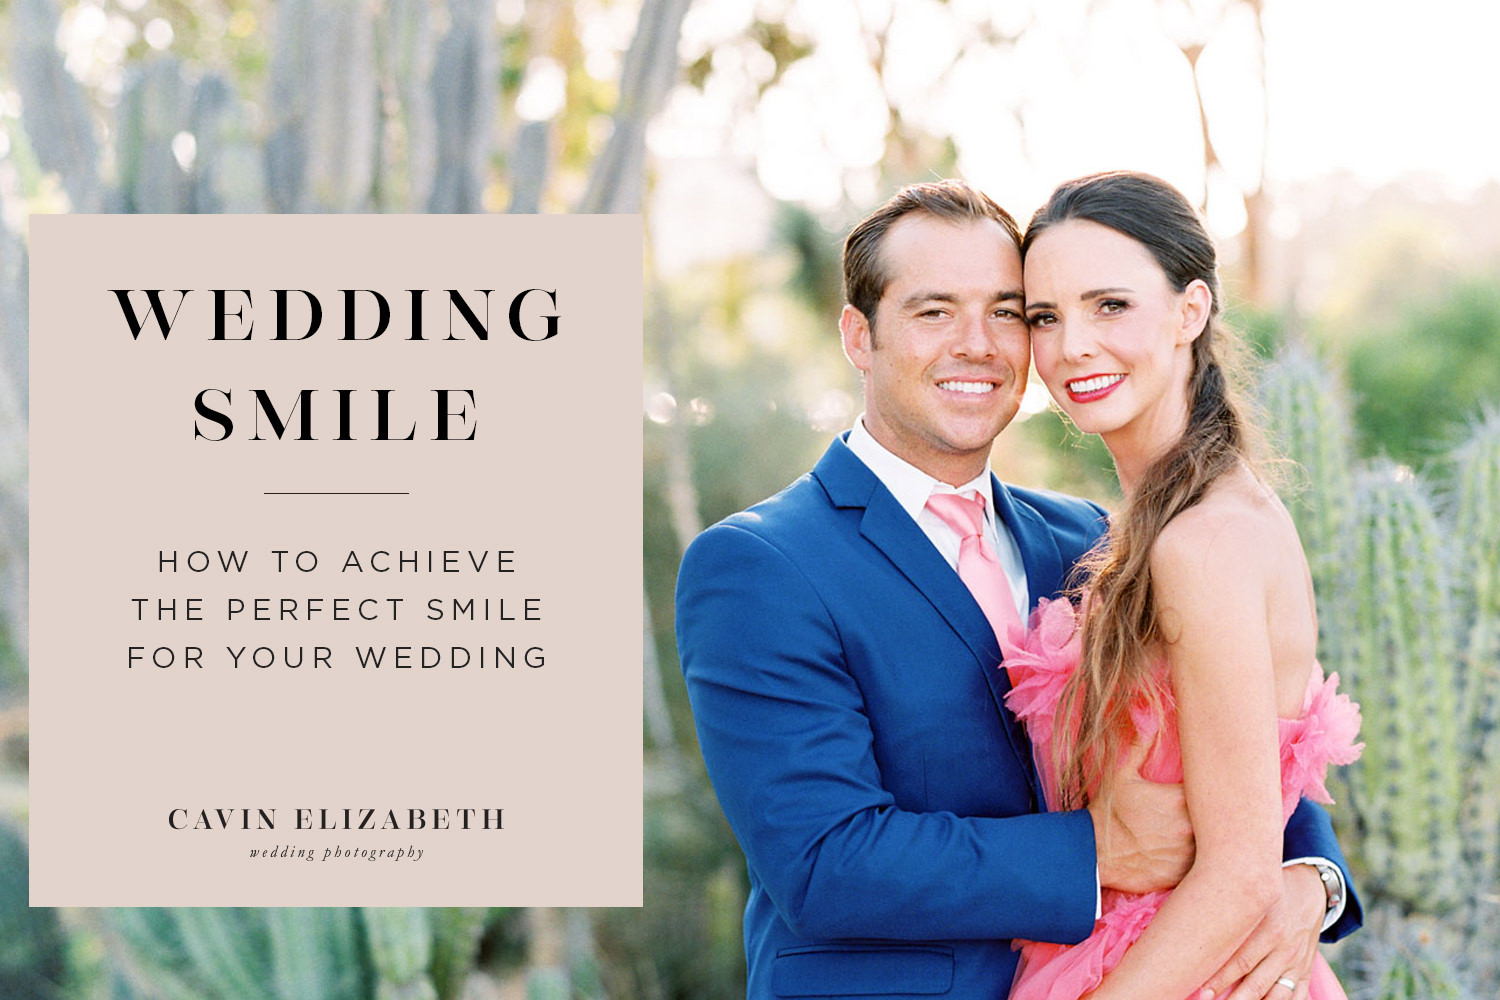 How to Achieve the Perfect Smile for Your Wedding. Natural smiles in photos that look beautiful.